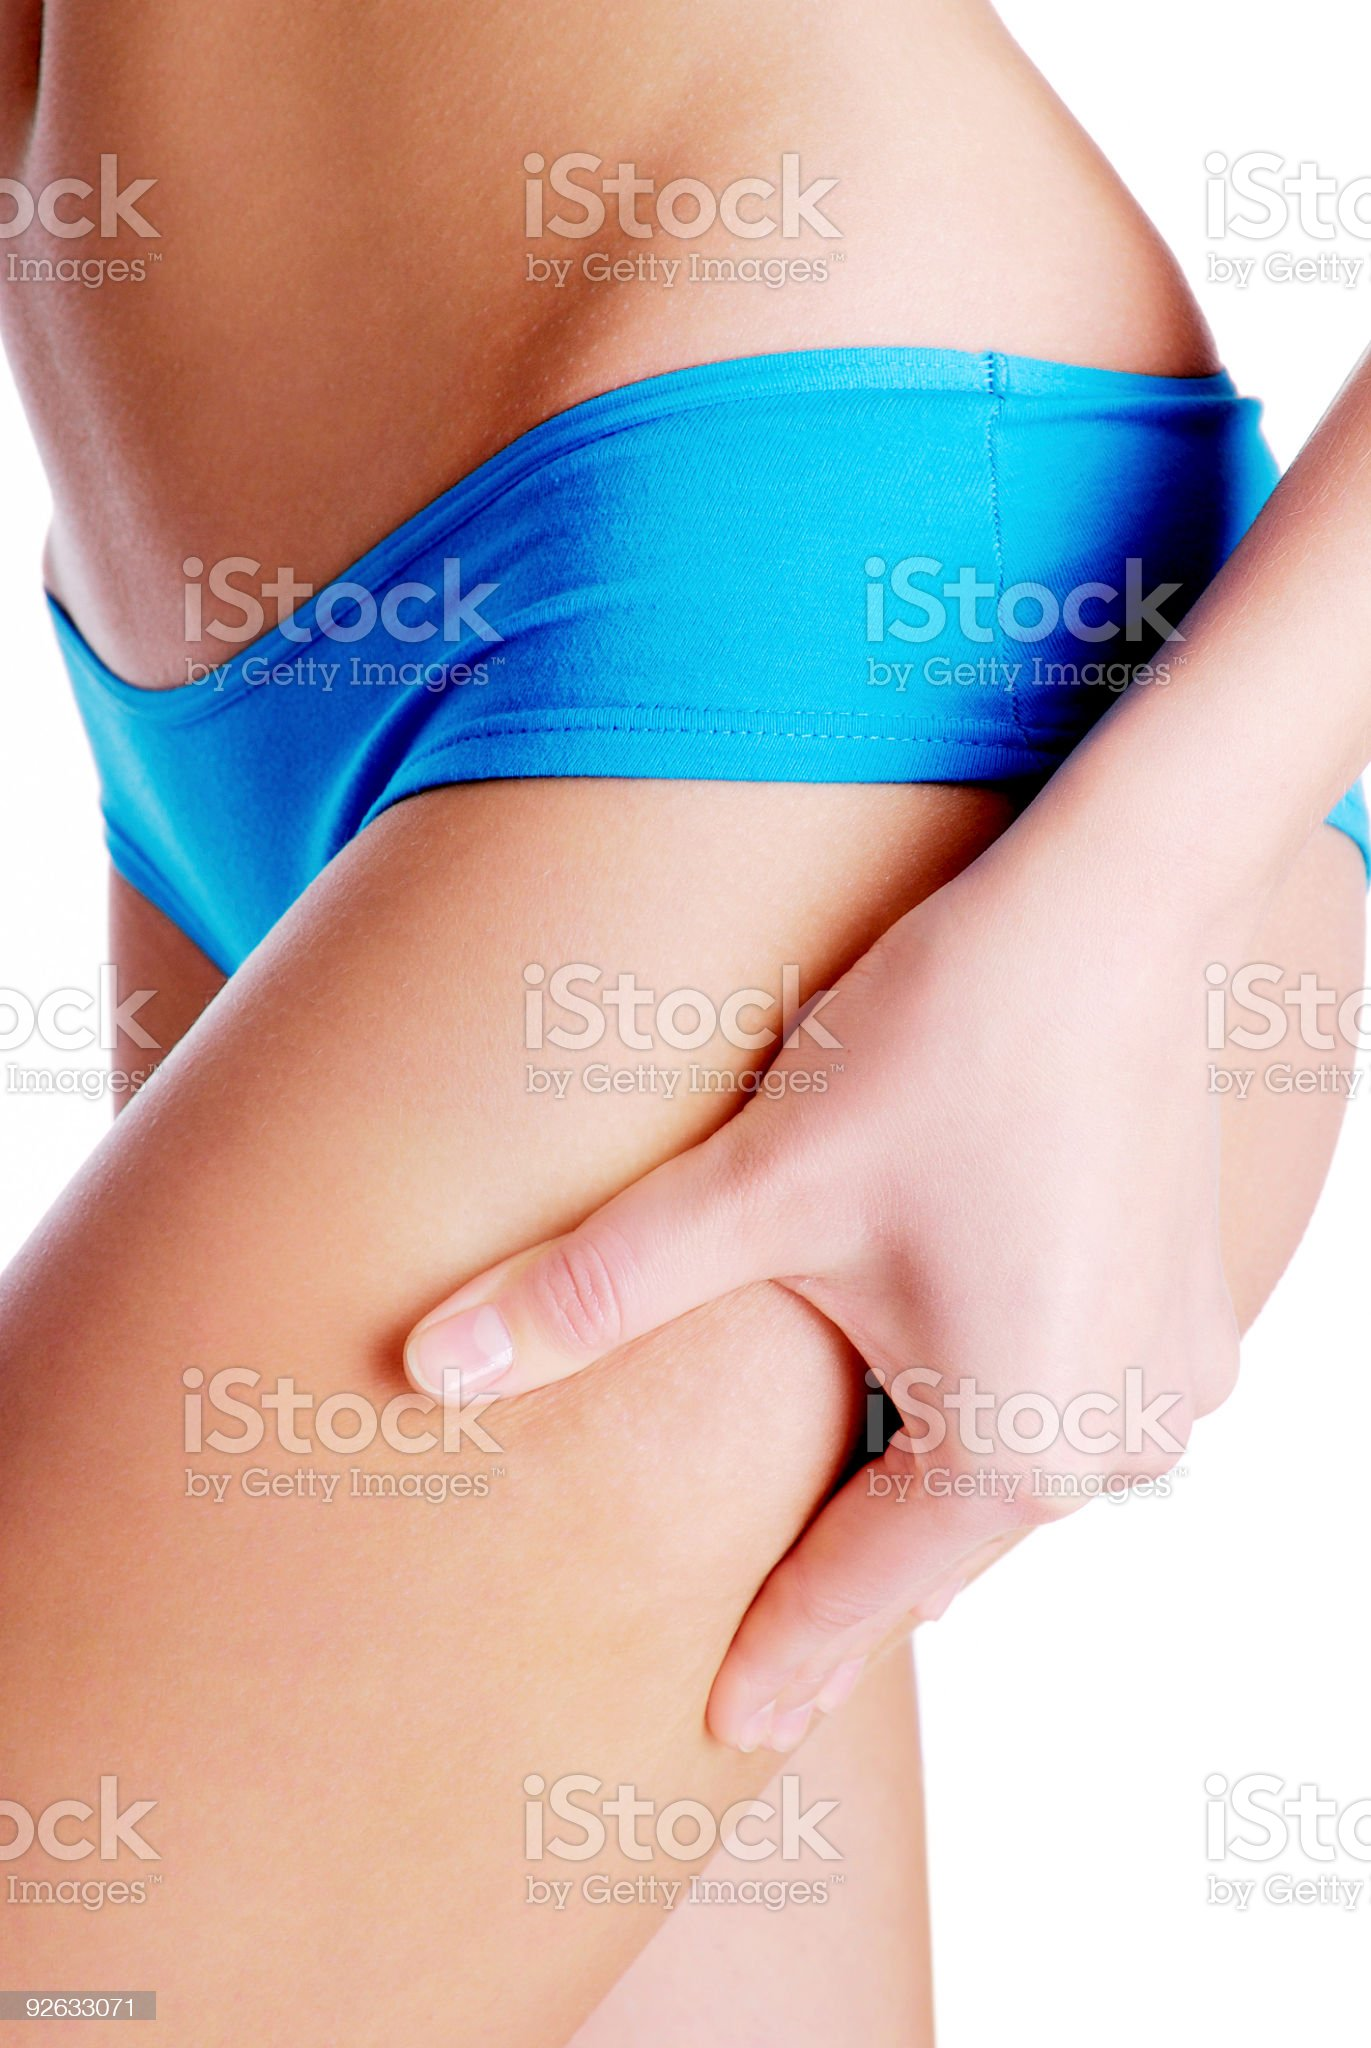 Cellulite on human legs royalty-free stock photo